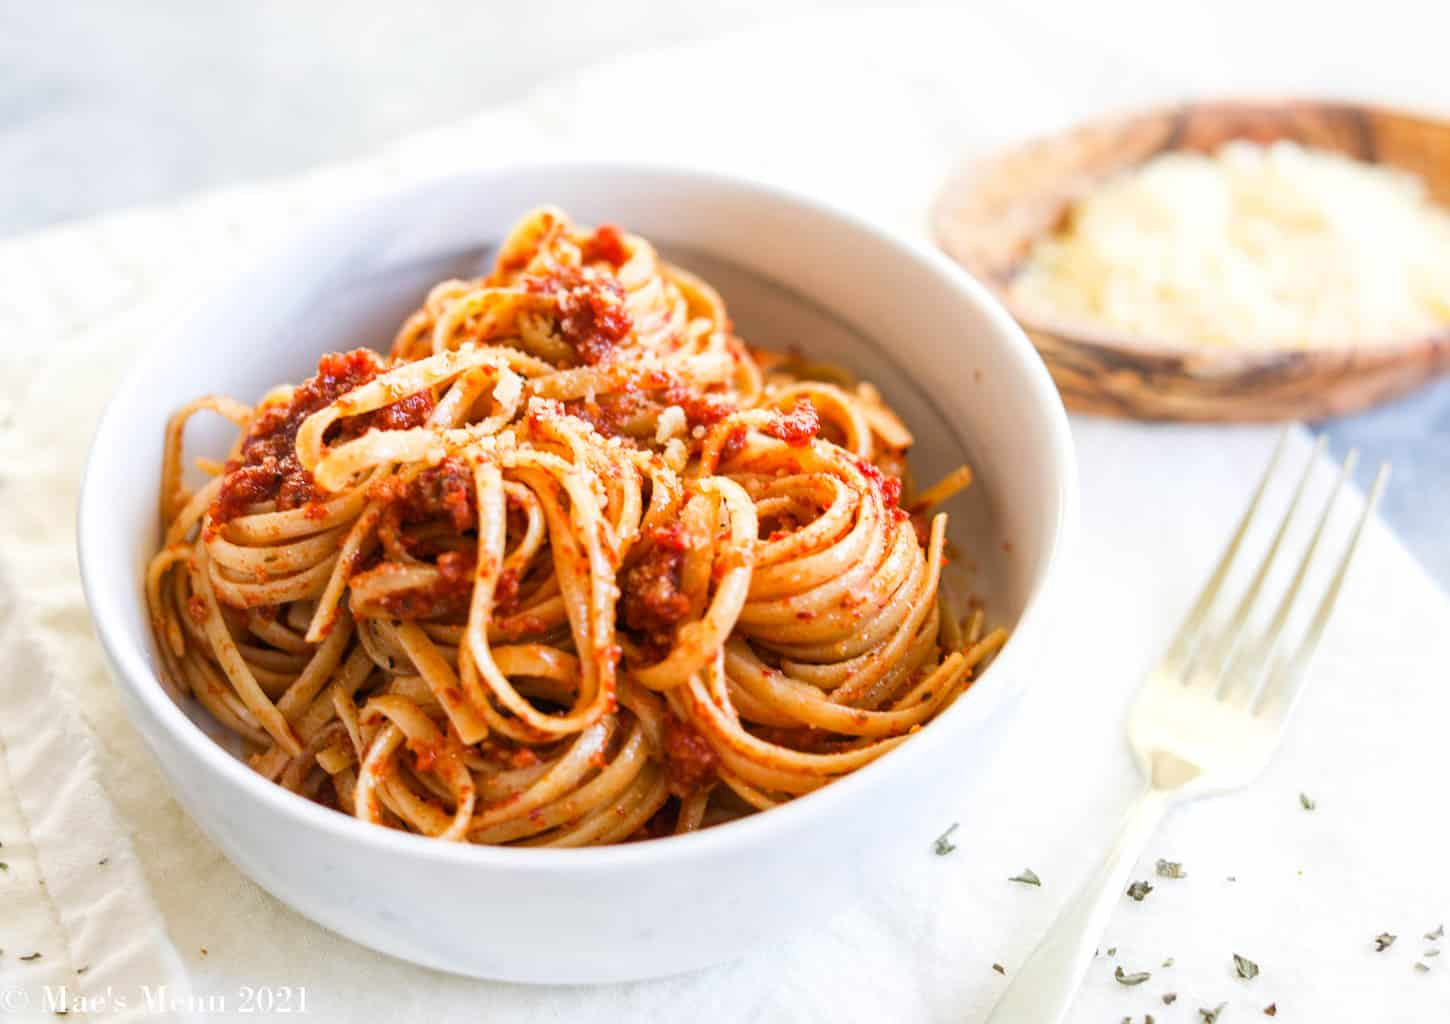 A side angle shot of a dish of pasta tossed with tomato (red) pesto